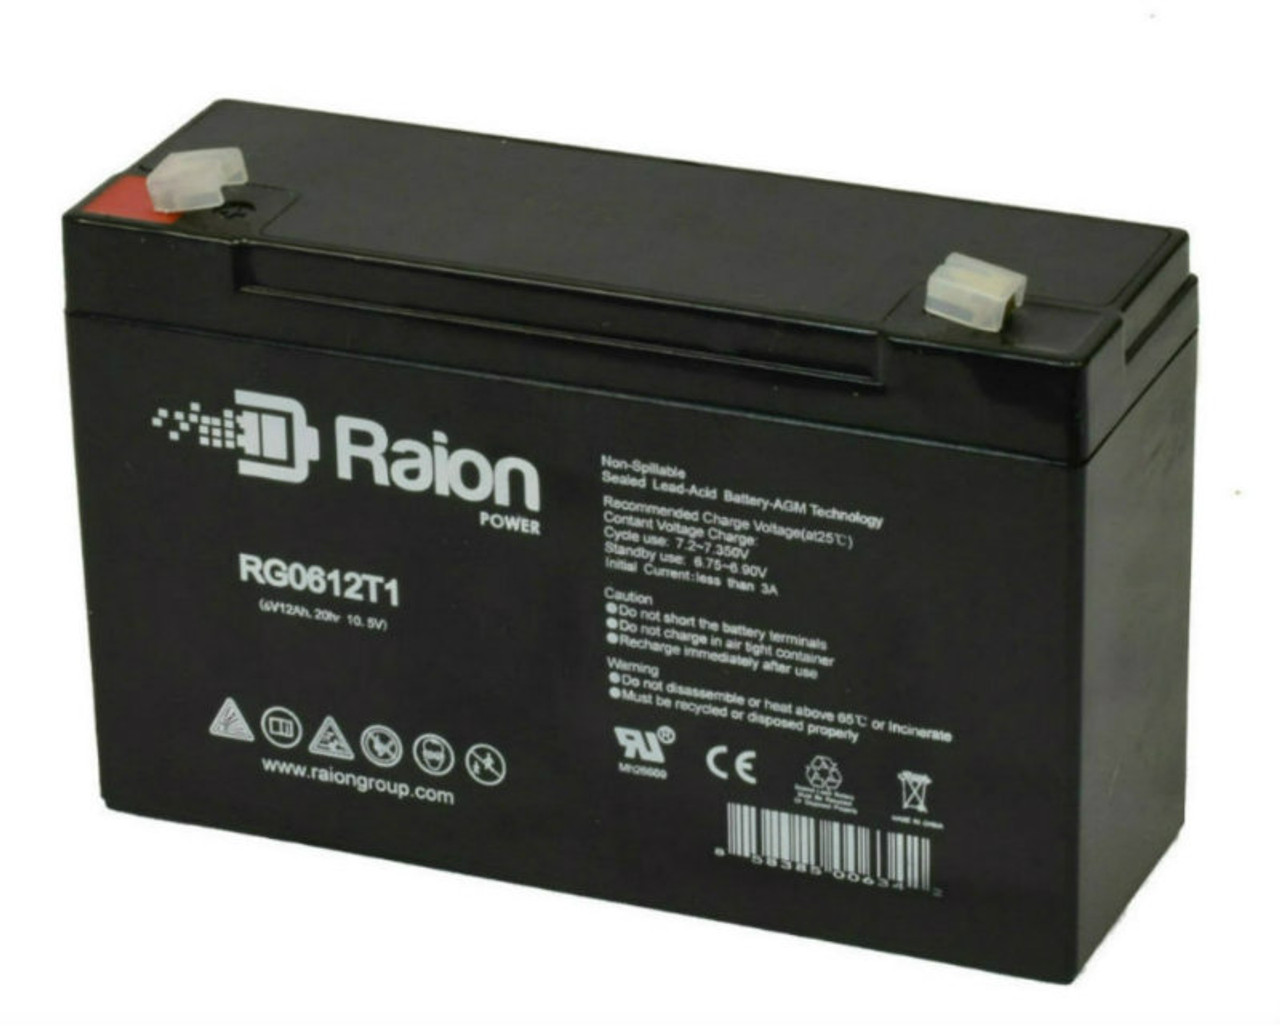 Raion Power RG06120T1 Replacement Battery Pack for Chloride TMFRE150 emergency light